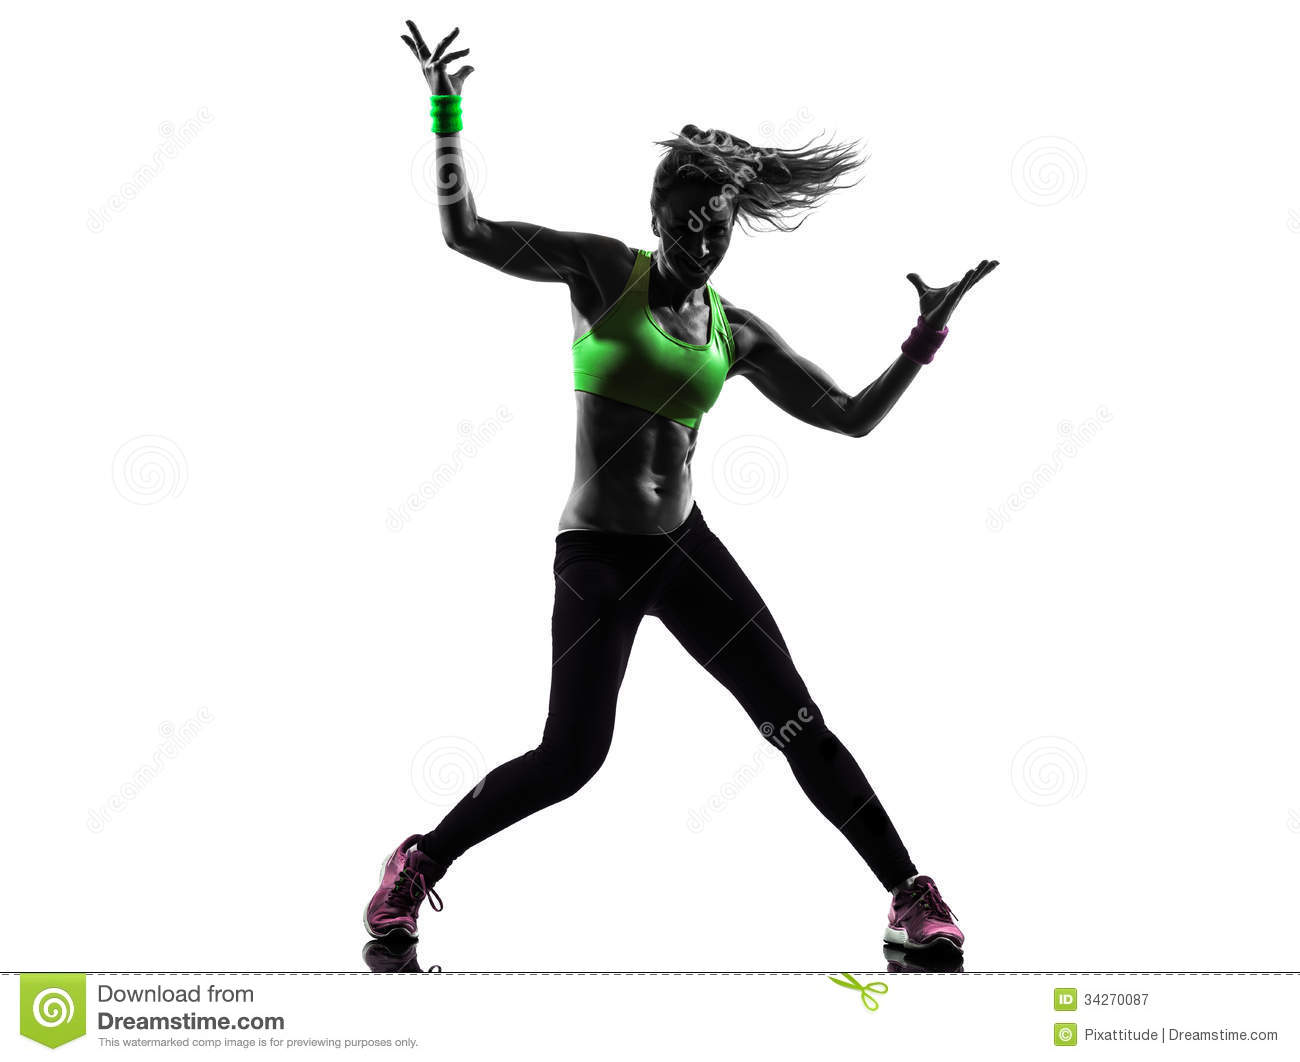 Woman Exercising Fitness Zumba Dancing Silhouette Royalty Free Stock